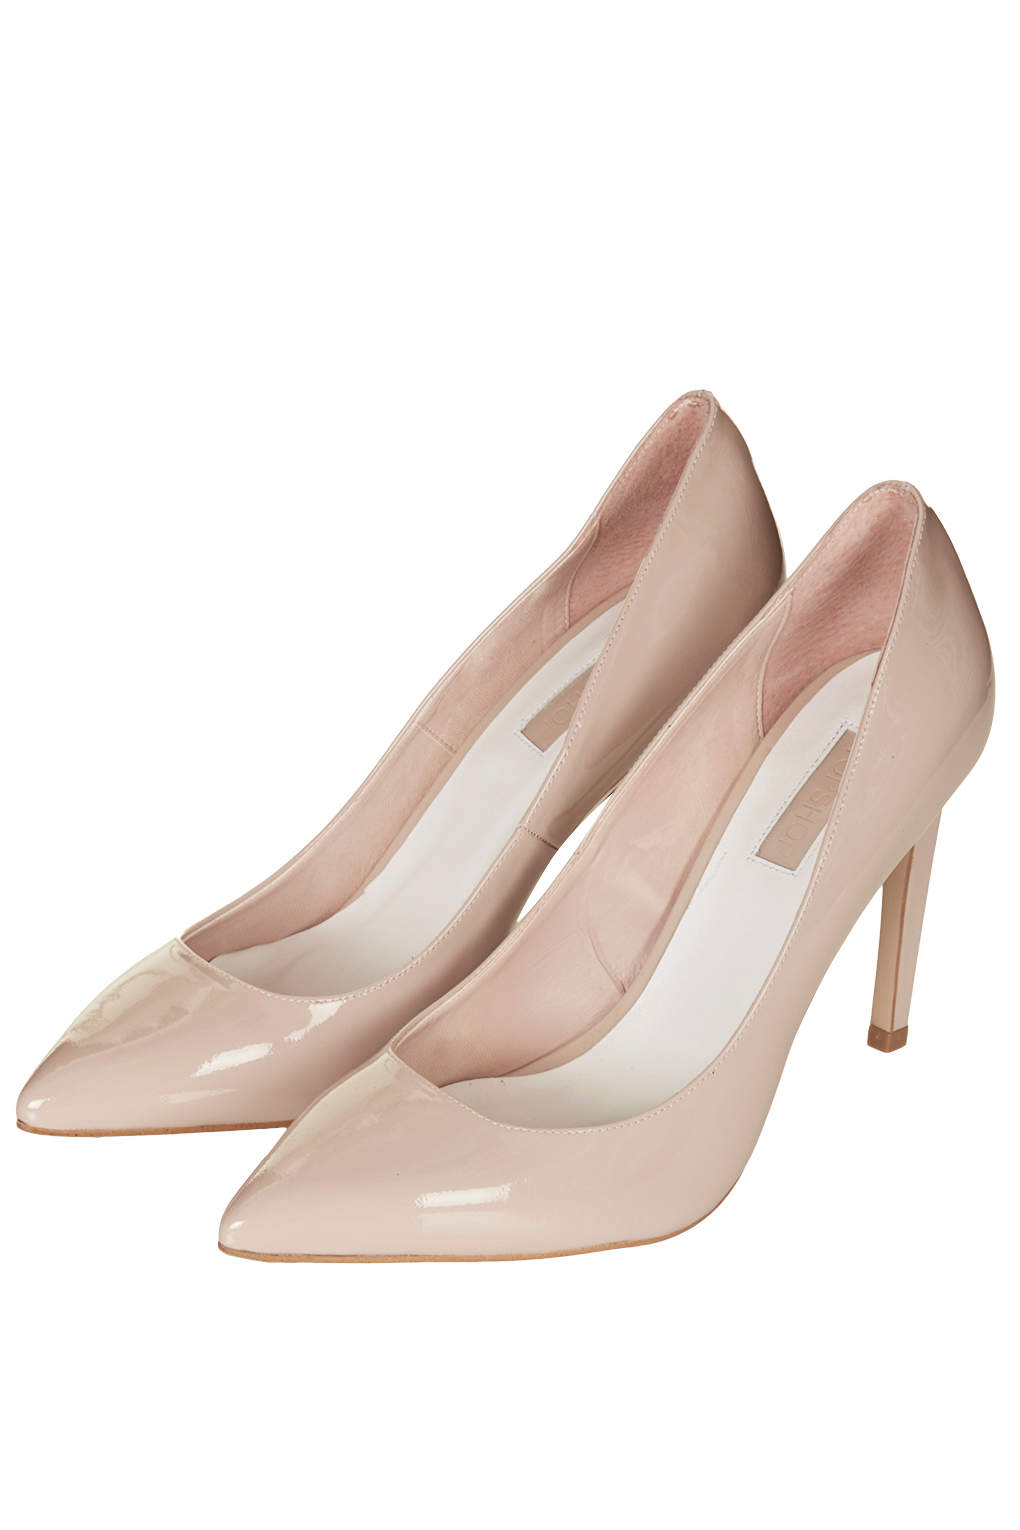 Topshop Womens Glory High Heel Shoes Nude in Natural | Lyst